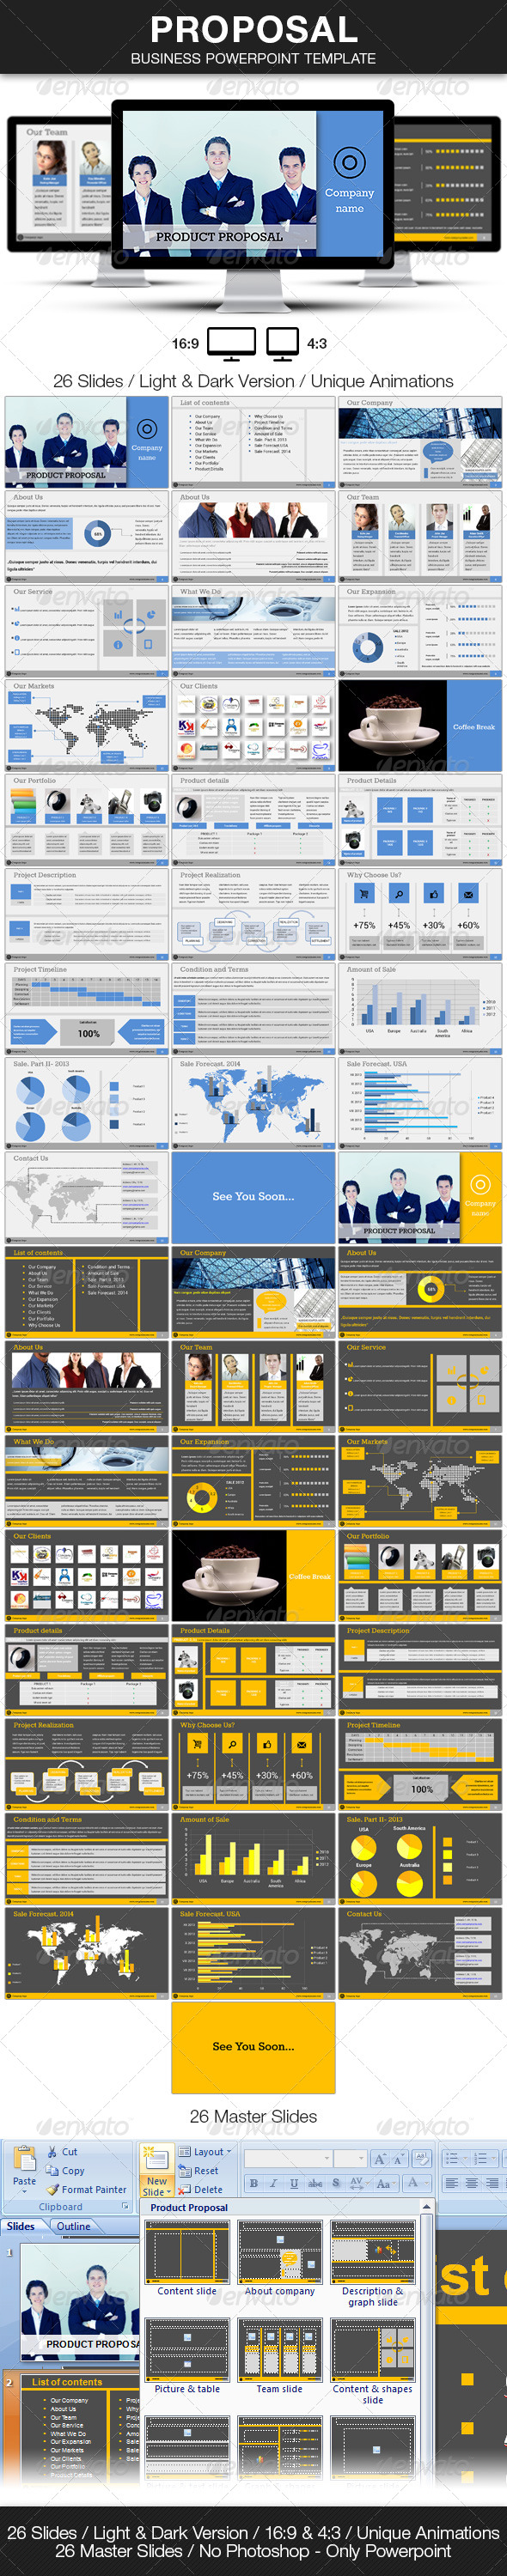 GraphicRiver Proposal Business Powerpoint Template 4512007